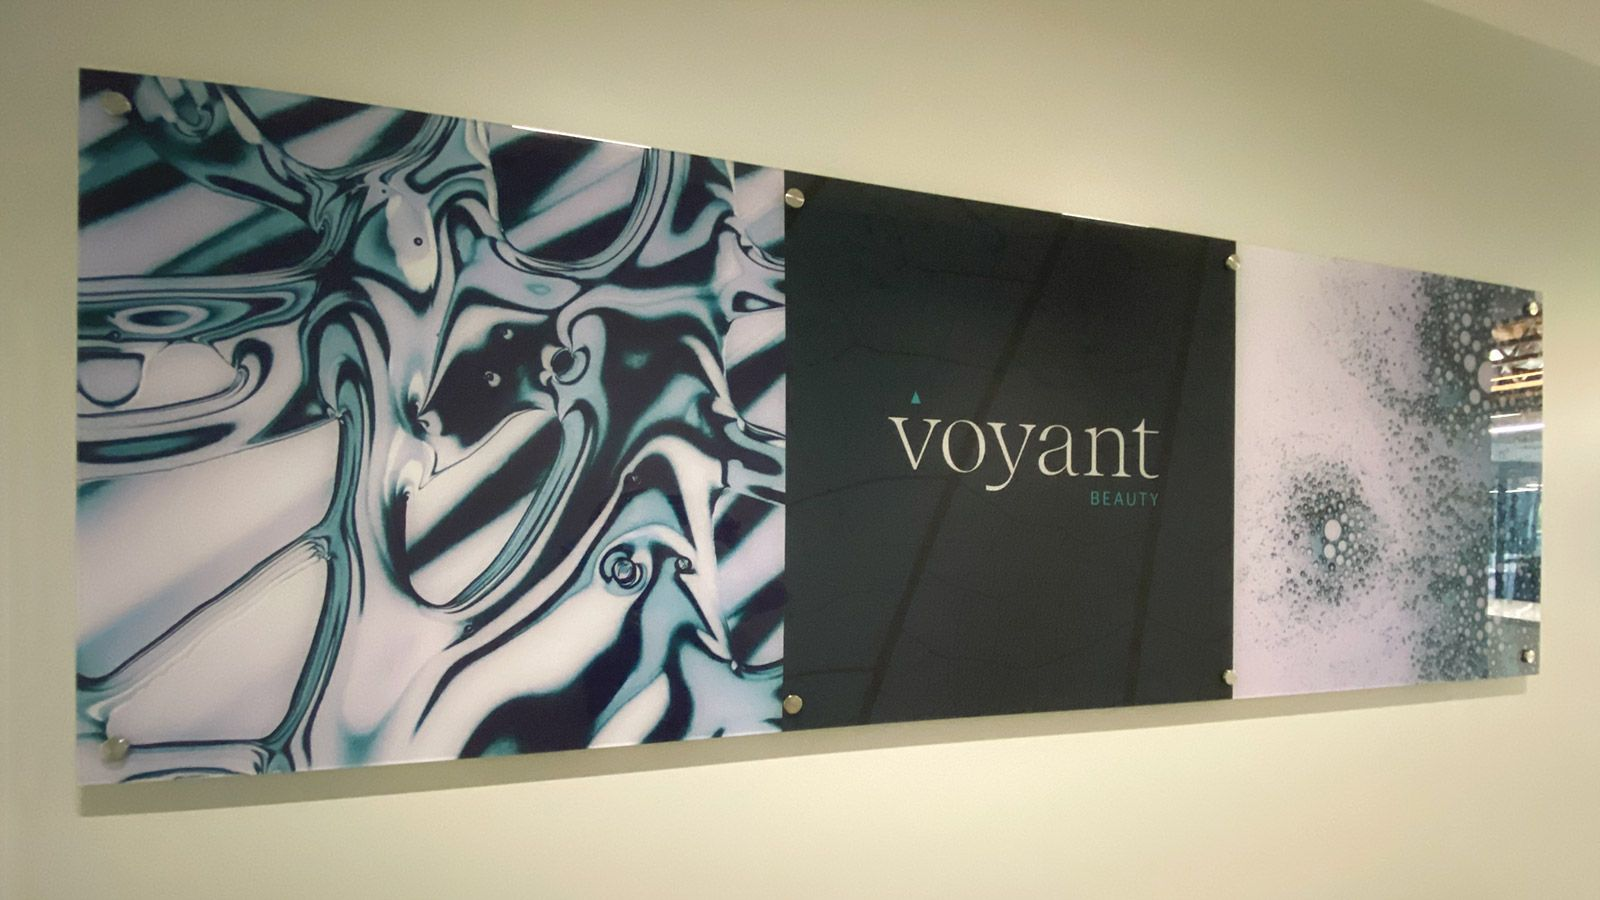 Voyant Beauty interior signs